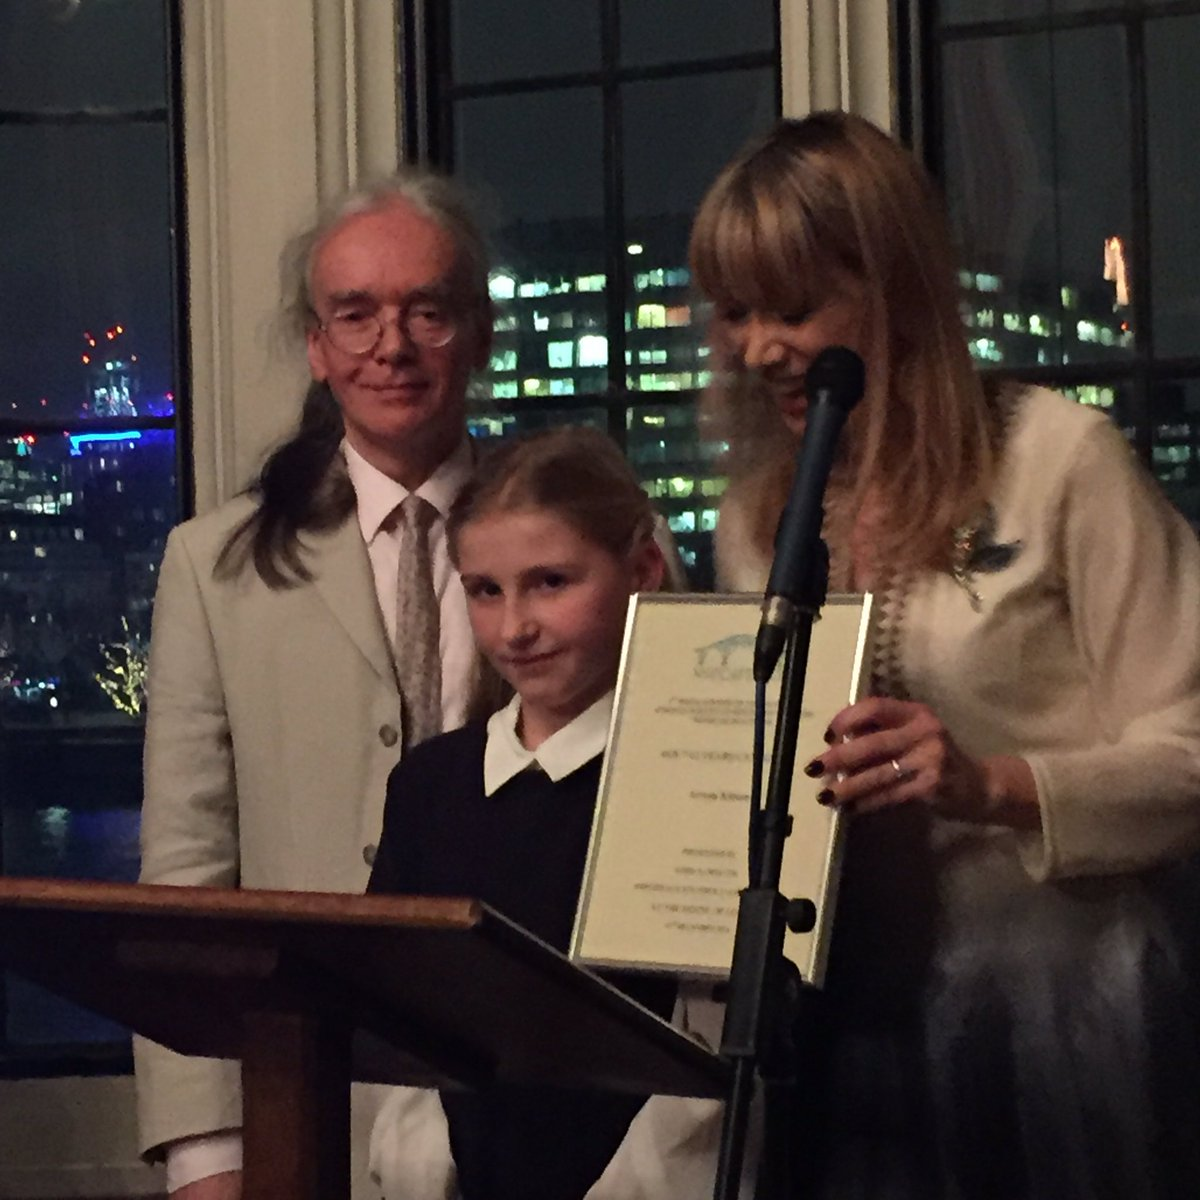 test Twitter Media - Congratulations young winners of the @Nspc4Peace poetry prize, announced at House of Lords tonight by @tallykoren & Lord Eames https://t.co/9OacvSNRpw